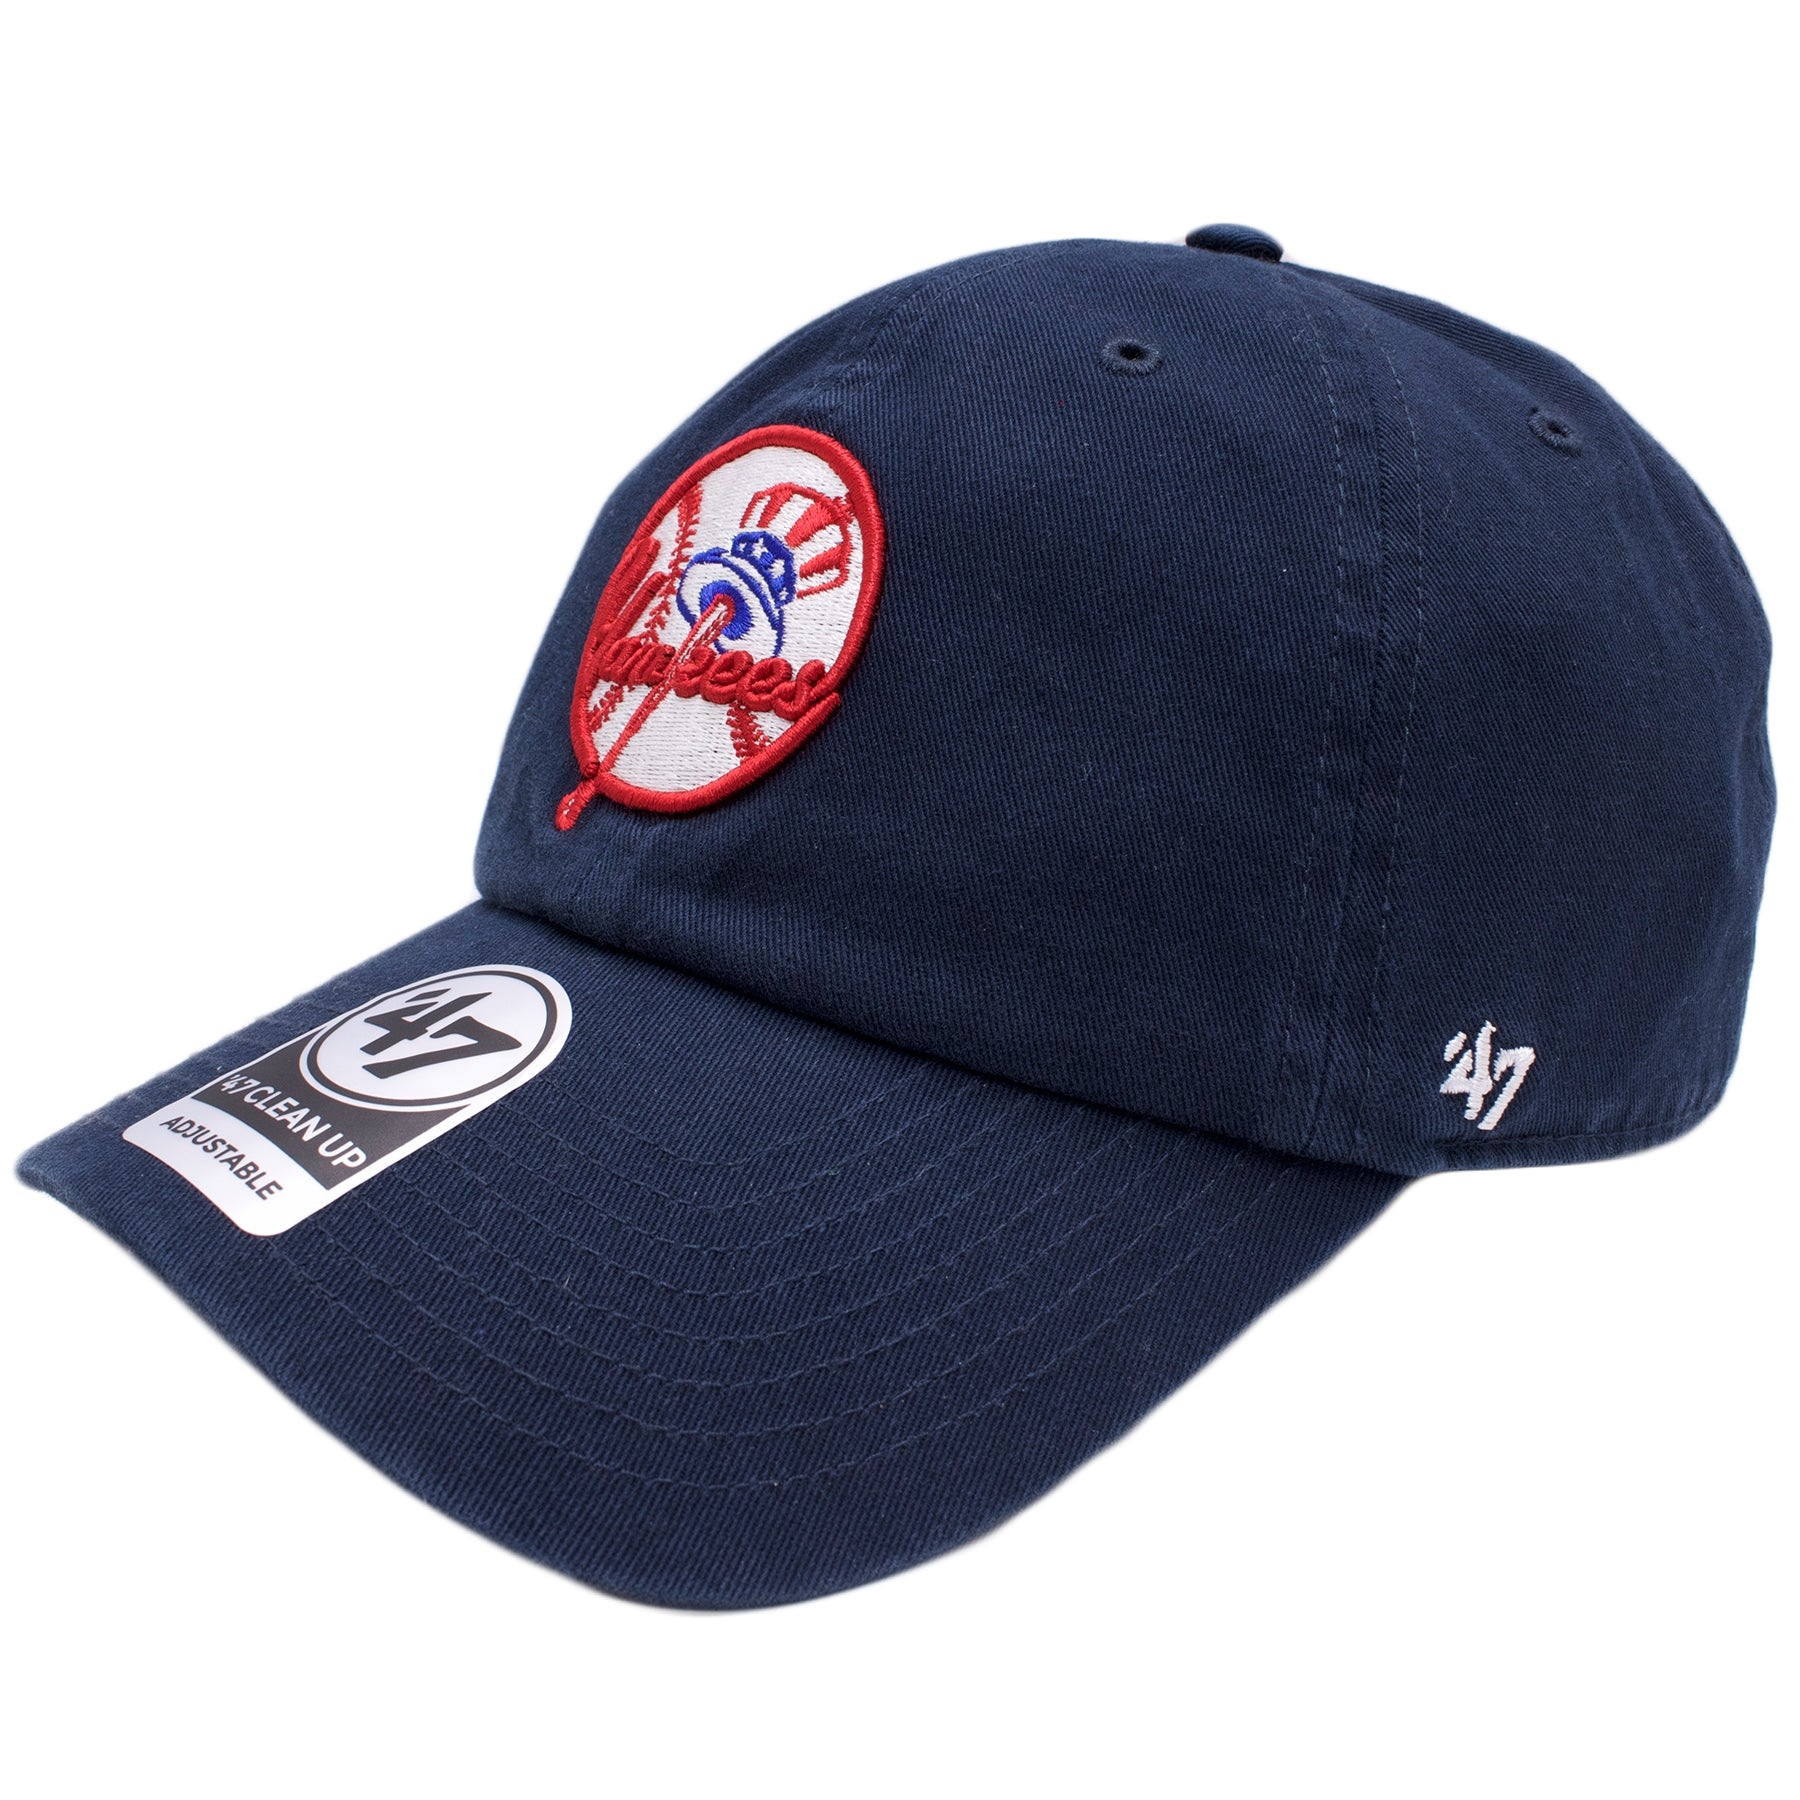 competitive price 419f1 a1b01 ... best price the vintage navy blue retro yankees dad hat has a soft crown  and a ...